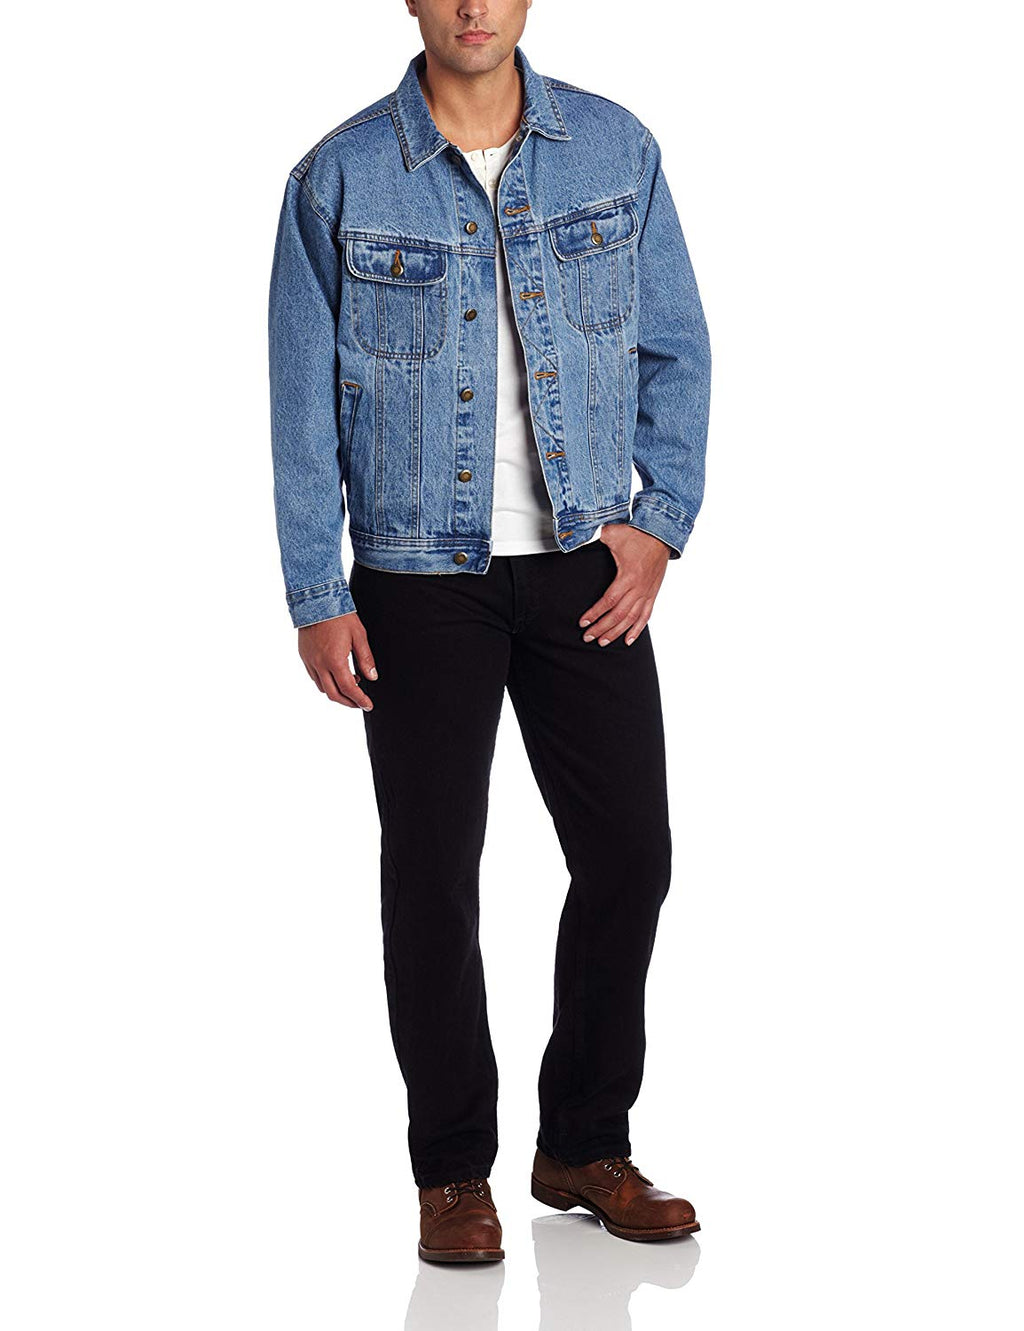 Men's Rugged Wear Unlined Denim Jacket